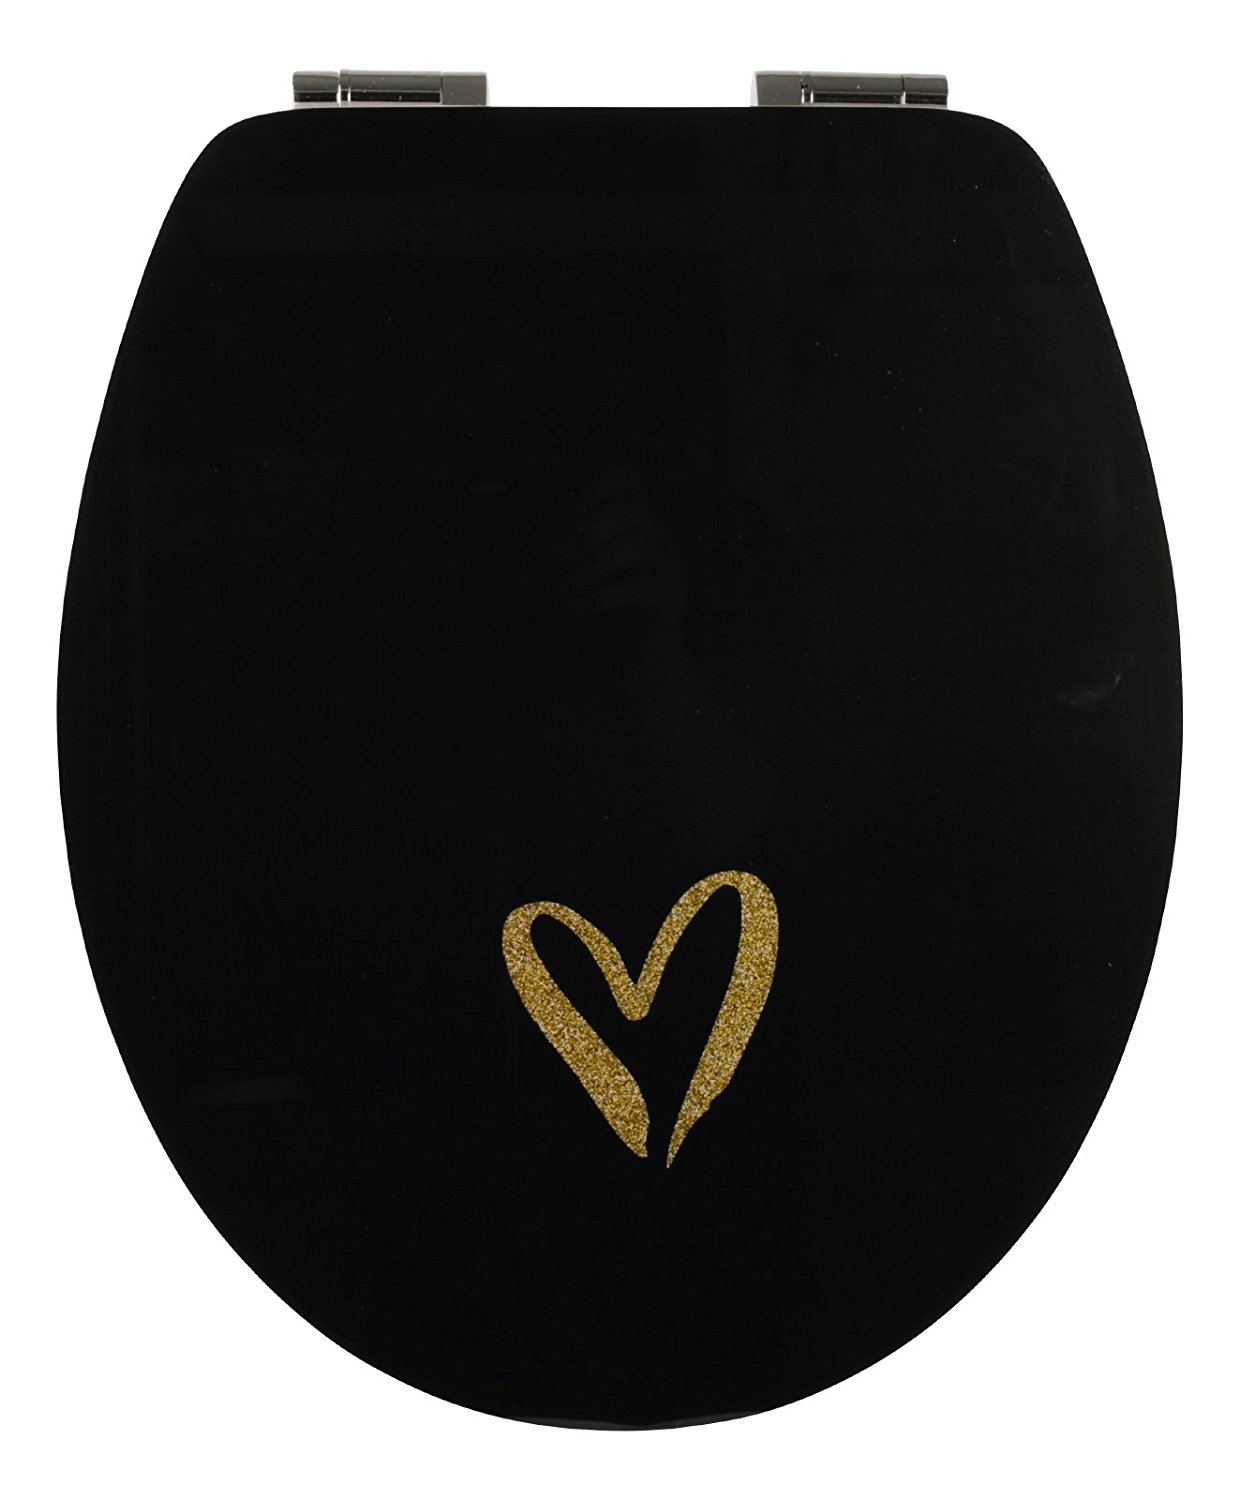 Cheap Black Toilet Seat Find Black Toilet Seat Deals On Line At